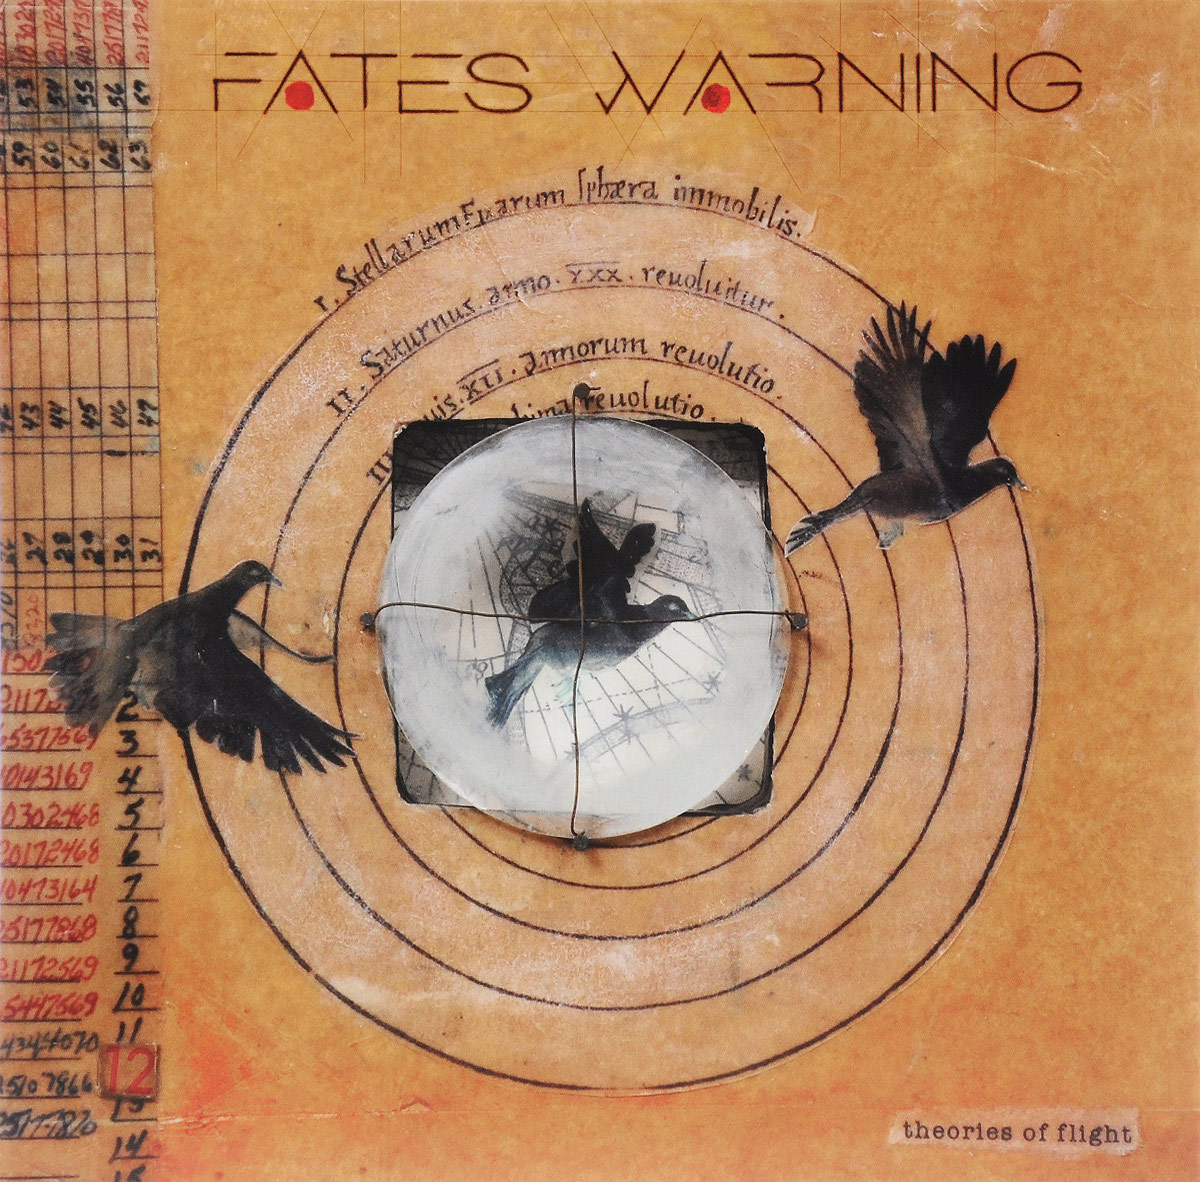 Fates Warning Fates Warning. Theories Of Flight (2 LP) fates warning fates warning theories of flight 2 lp cd